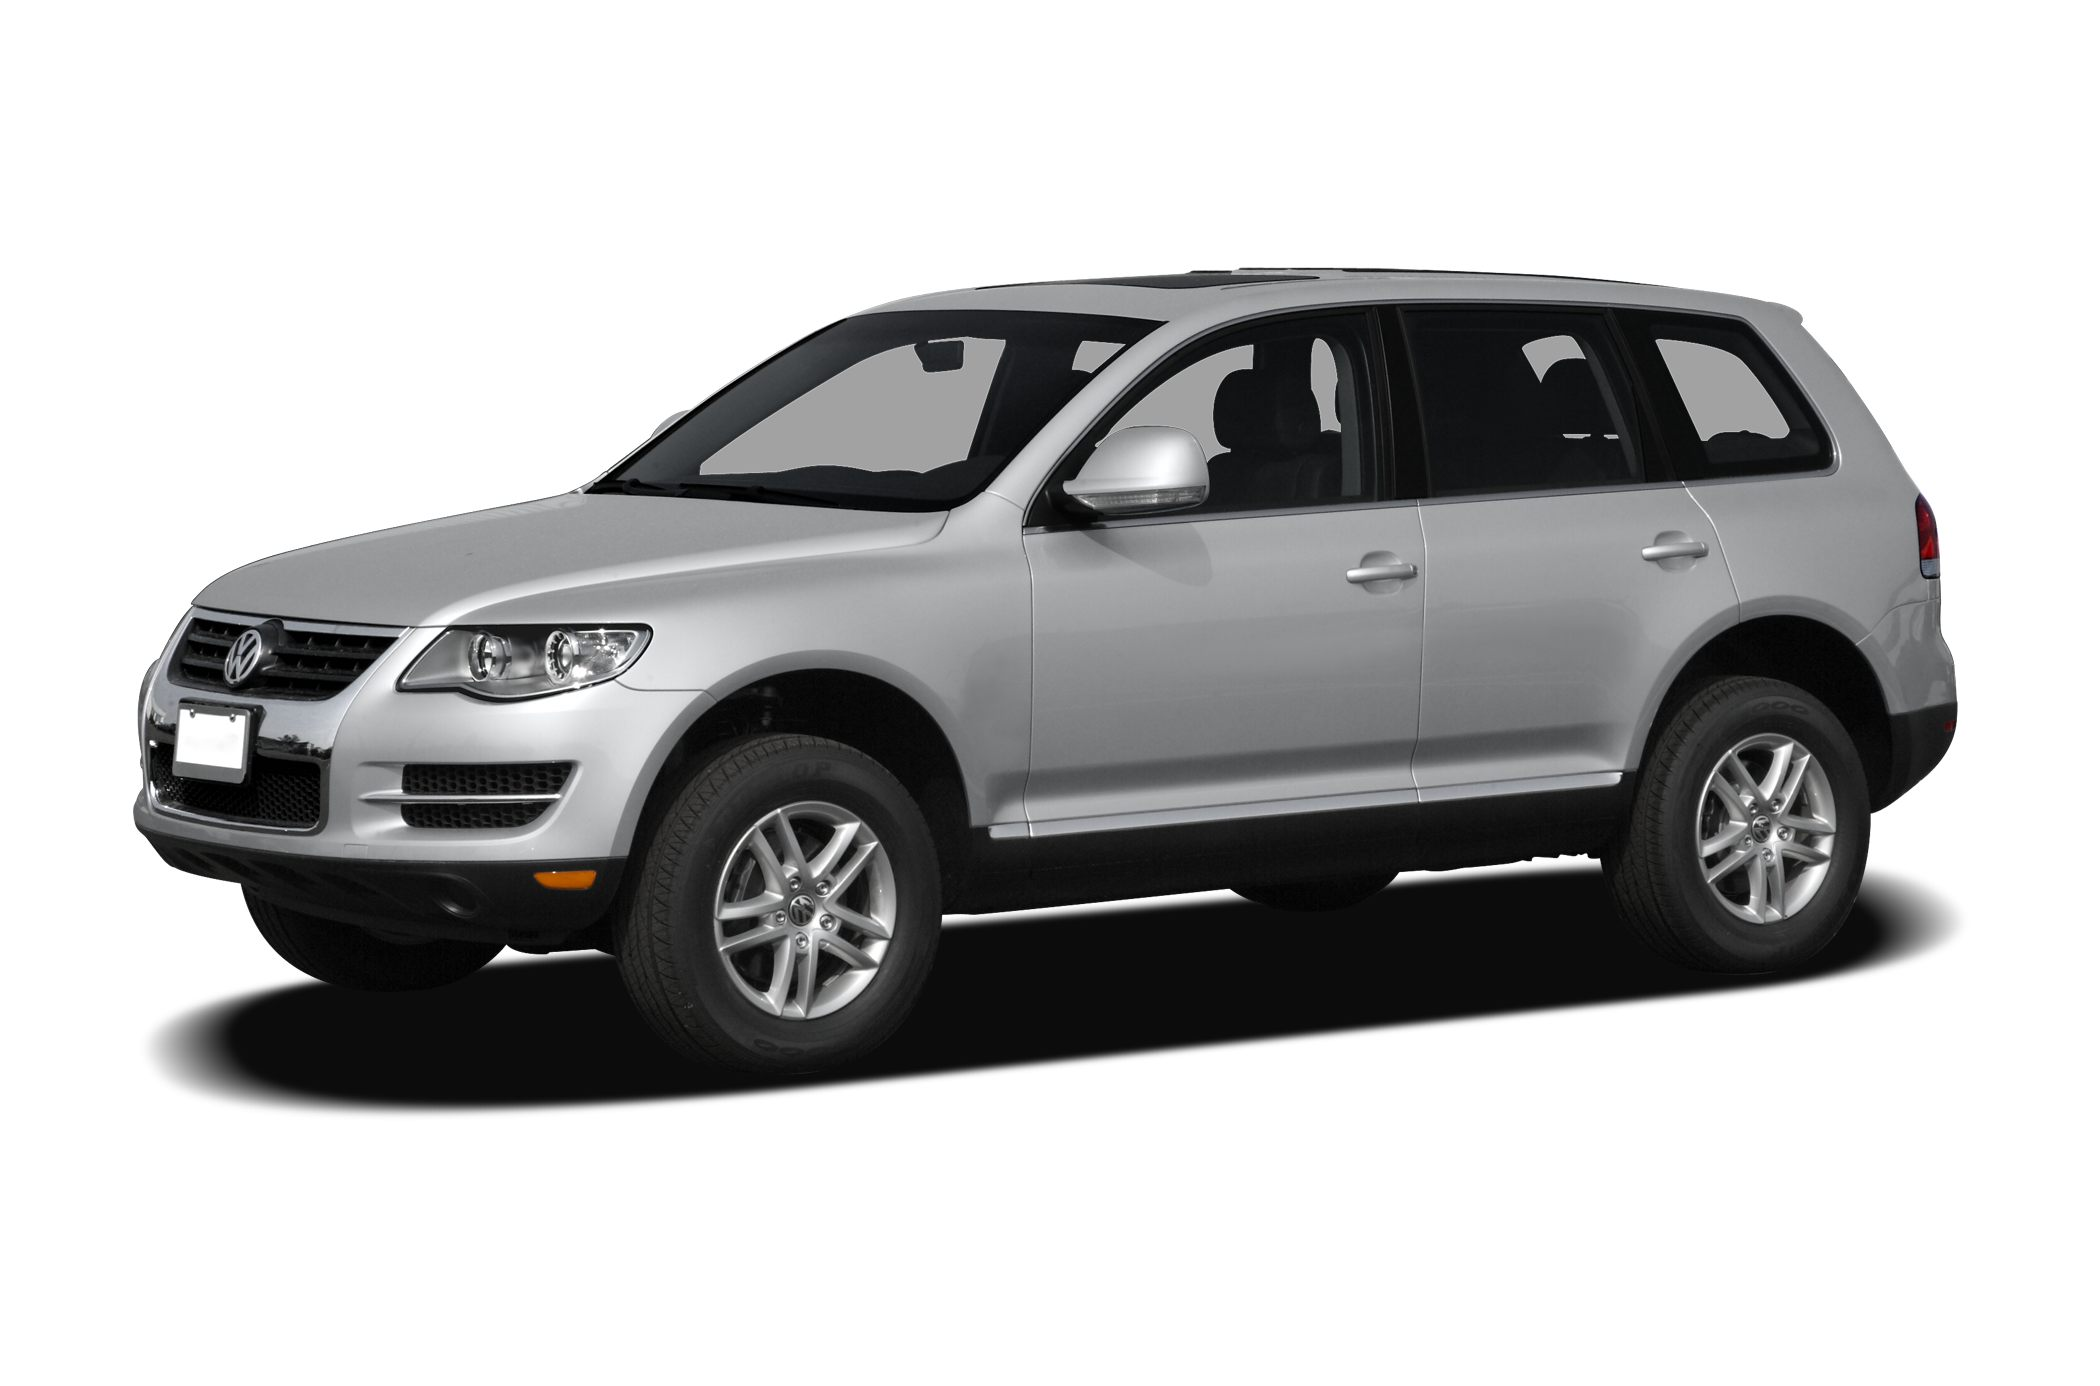 2009 Volkswagen Touareg 2 V6 TDI 4dr All wheel Drive Specs and Prices